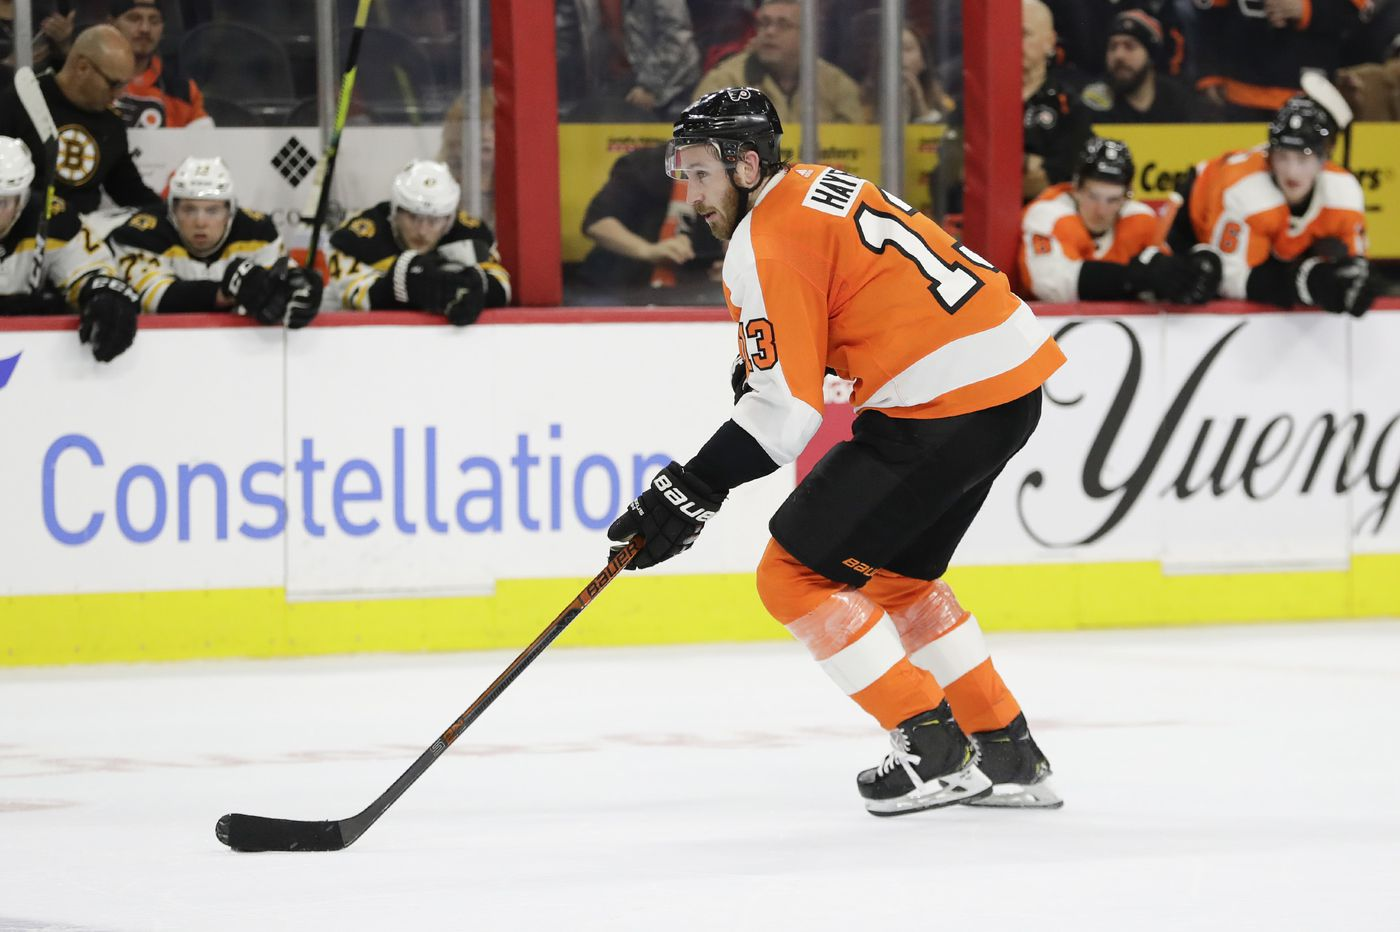 Flyers face Bruins as push to Stanley Cup playoffs begins with teams' first meaningful game in nearly 5 months